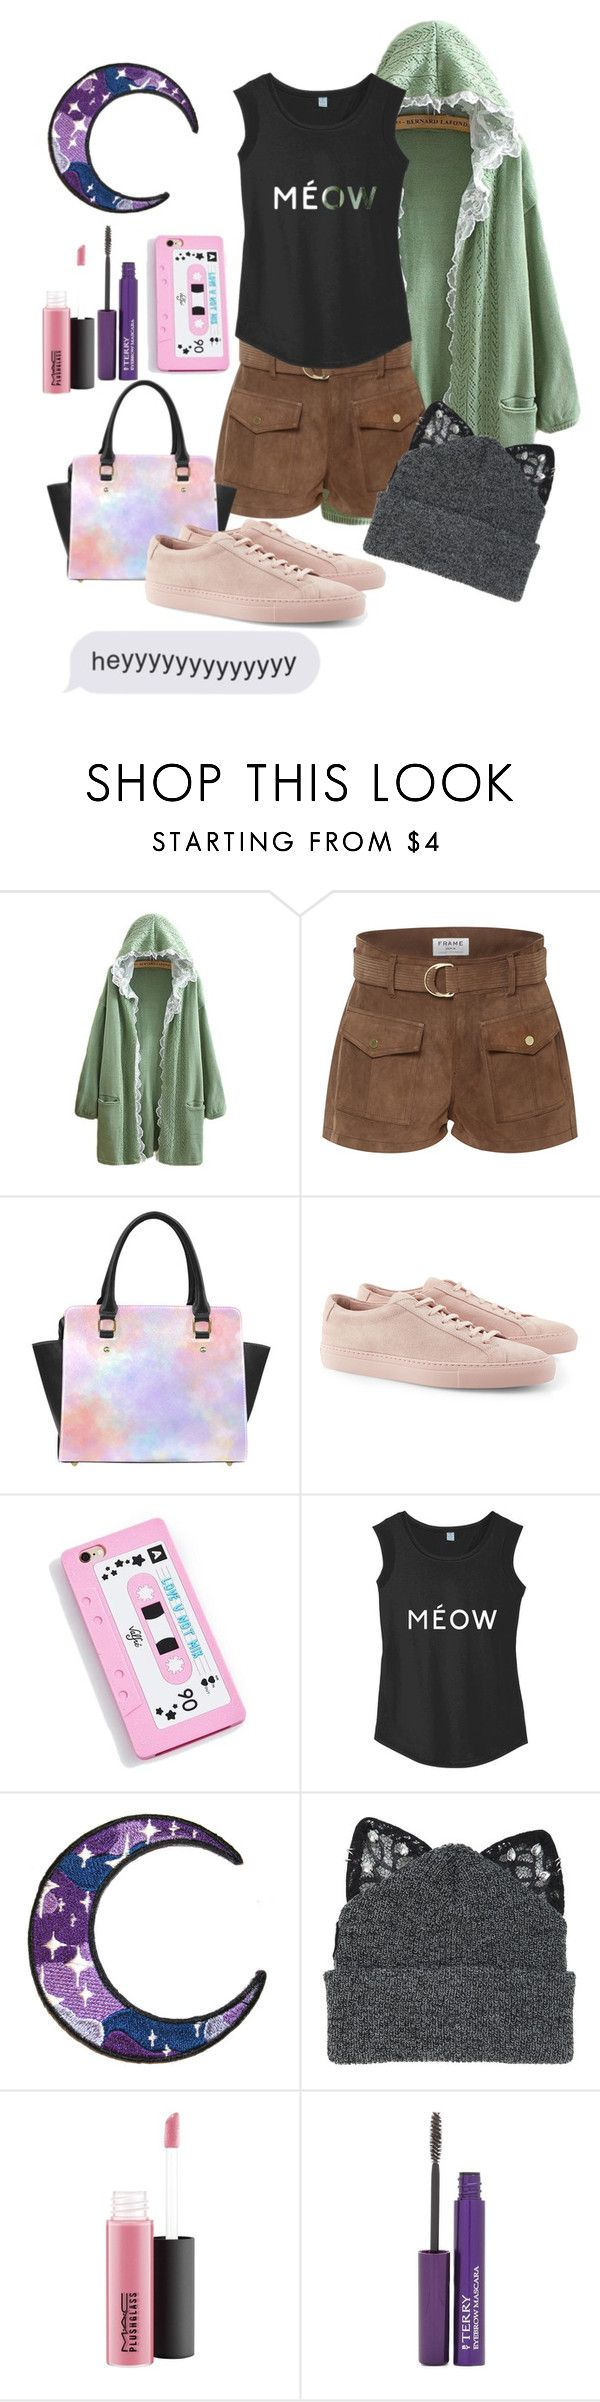 """""""Heyyyyyyyyyy"""" by aby-ocampo ❤ liked on Polyvore featuring Frame, Common Projects, Silver Spoon Attire, MAC Cosmetics and By Terry"""